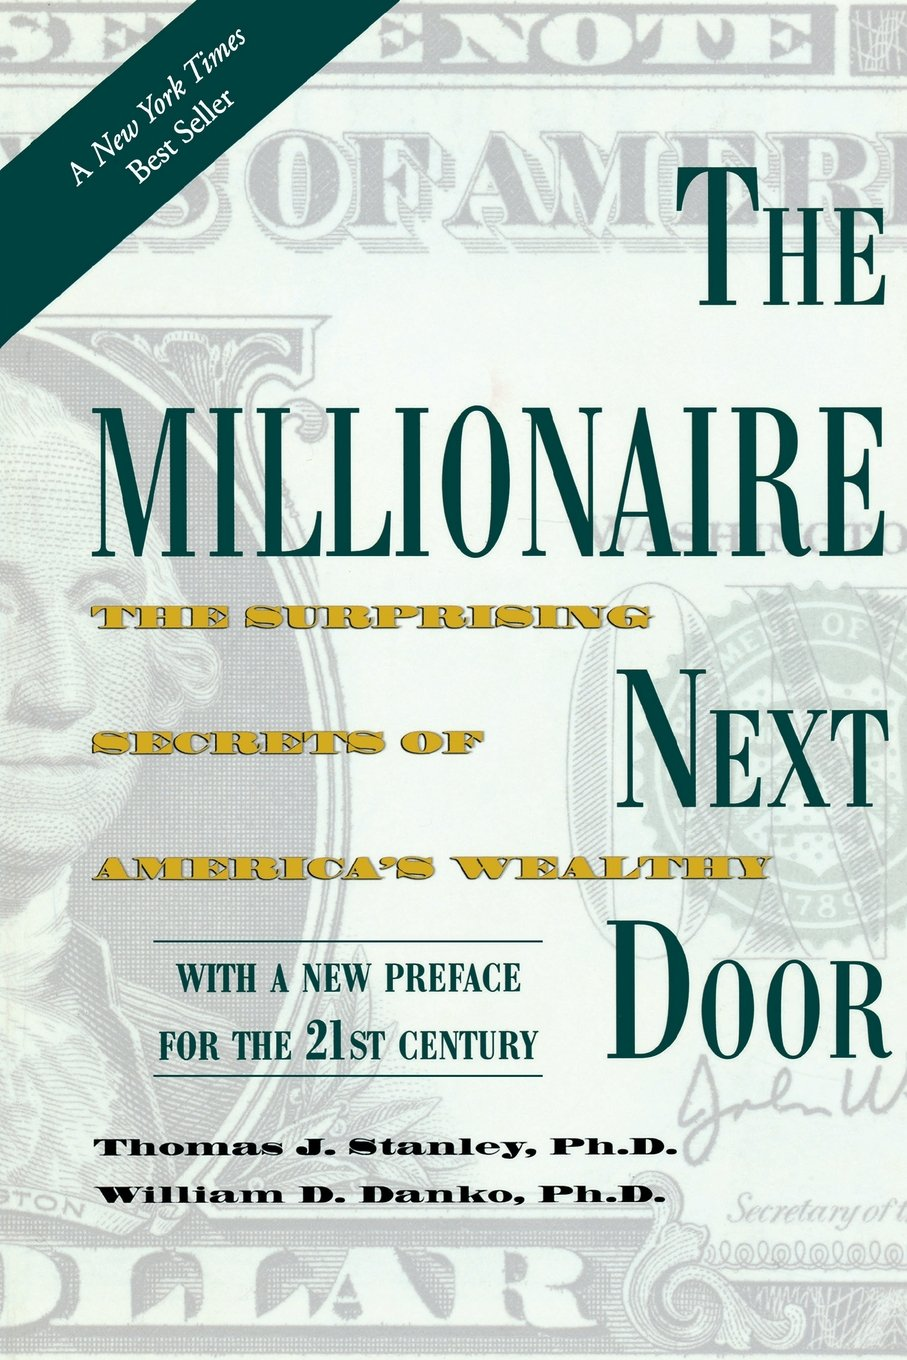 Thomas J. Stanley in William D. Danko - The Millionaire Next Door: The Surprising Secrets of America's Wealthy